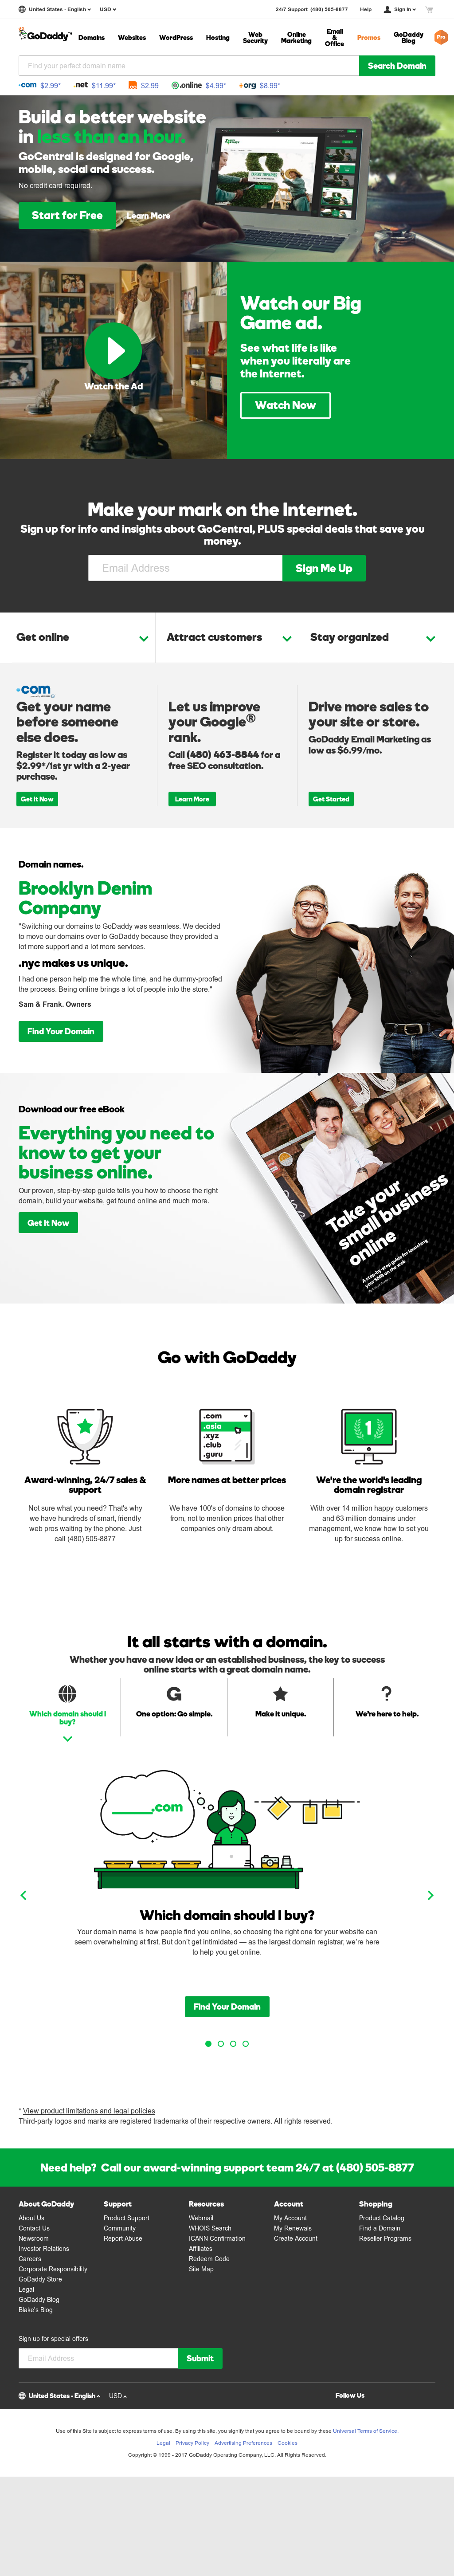 GoDaddy Competitors, Revenue and Employees - Owler Company